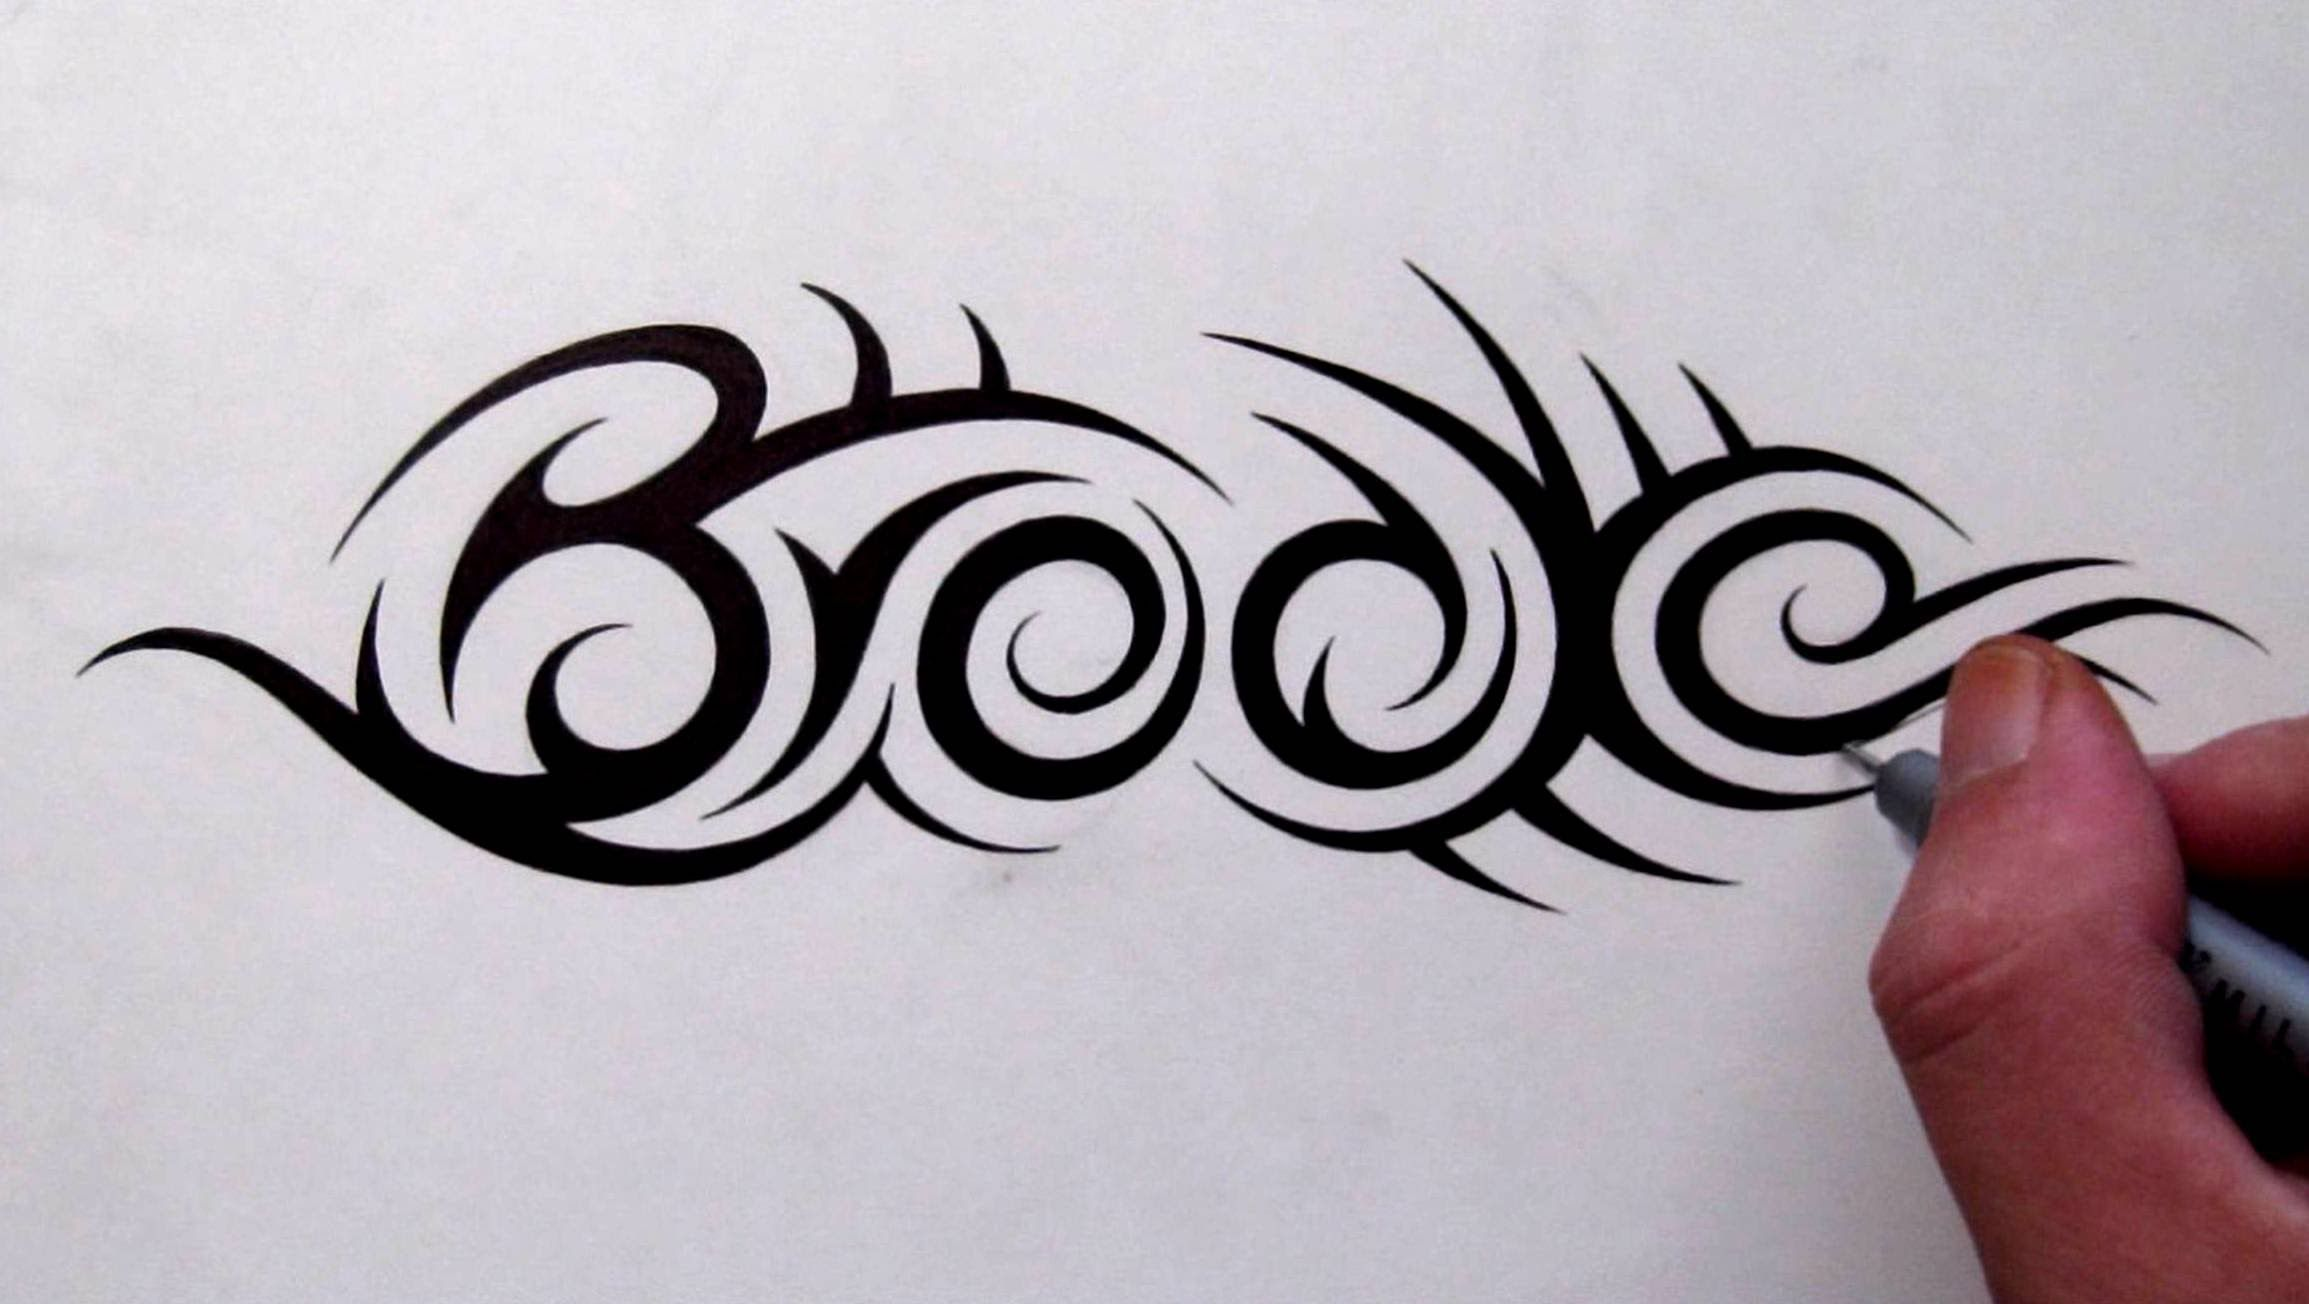 Custom Tattoo Designs Hidden Tribal Name Brooke Tribal Tattoo Designs Family Name Tattoos Name Tattoo Designs